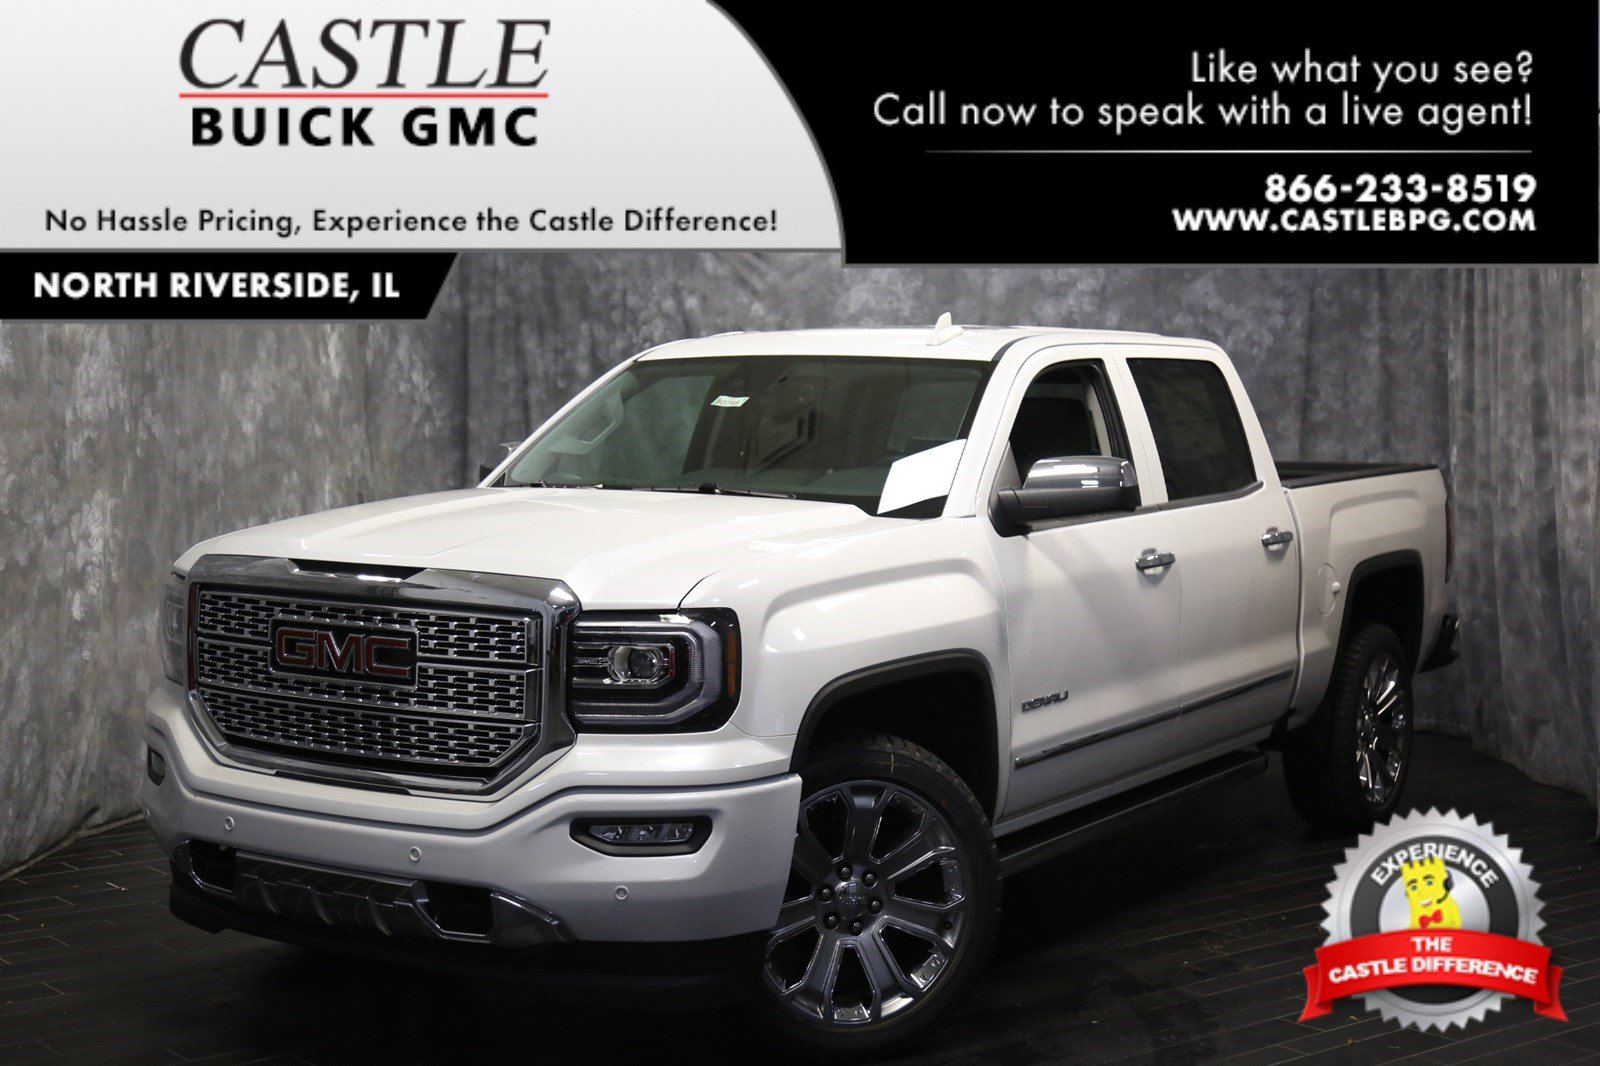 New 2018 Gmc Sierra 1500 Denali Crew Cab Pickup In North Riverside Dual Battery Kit